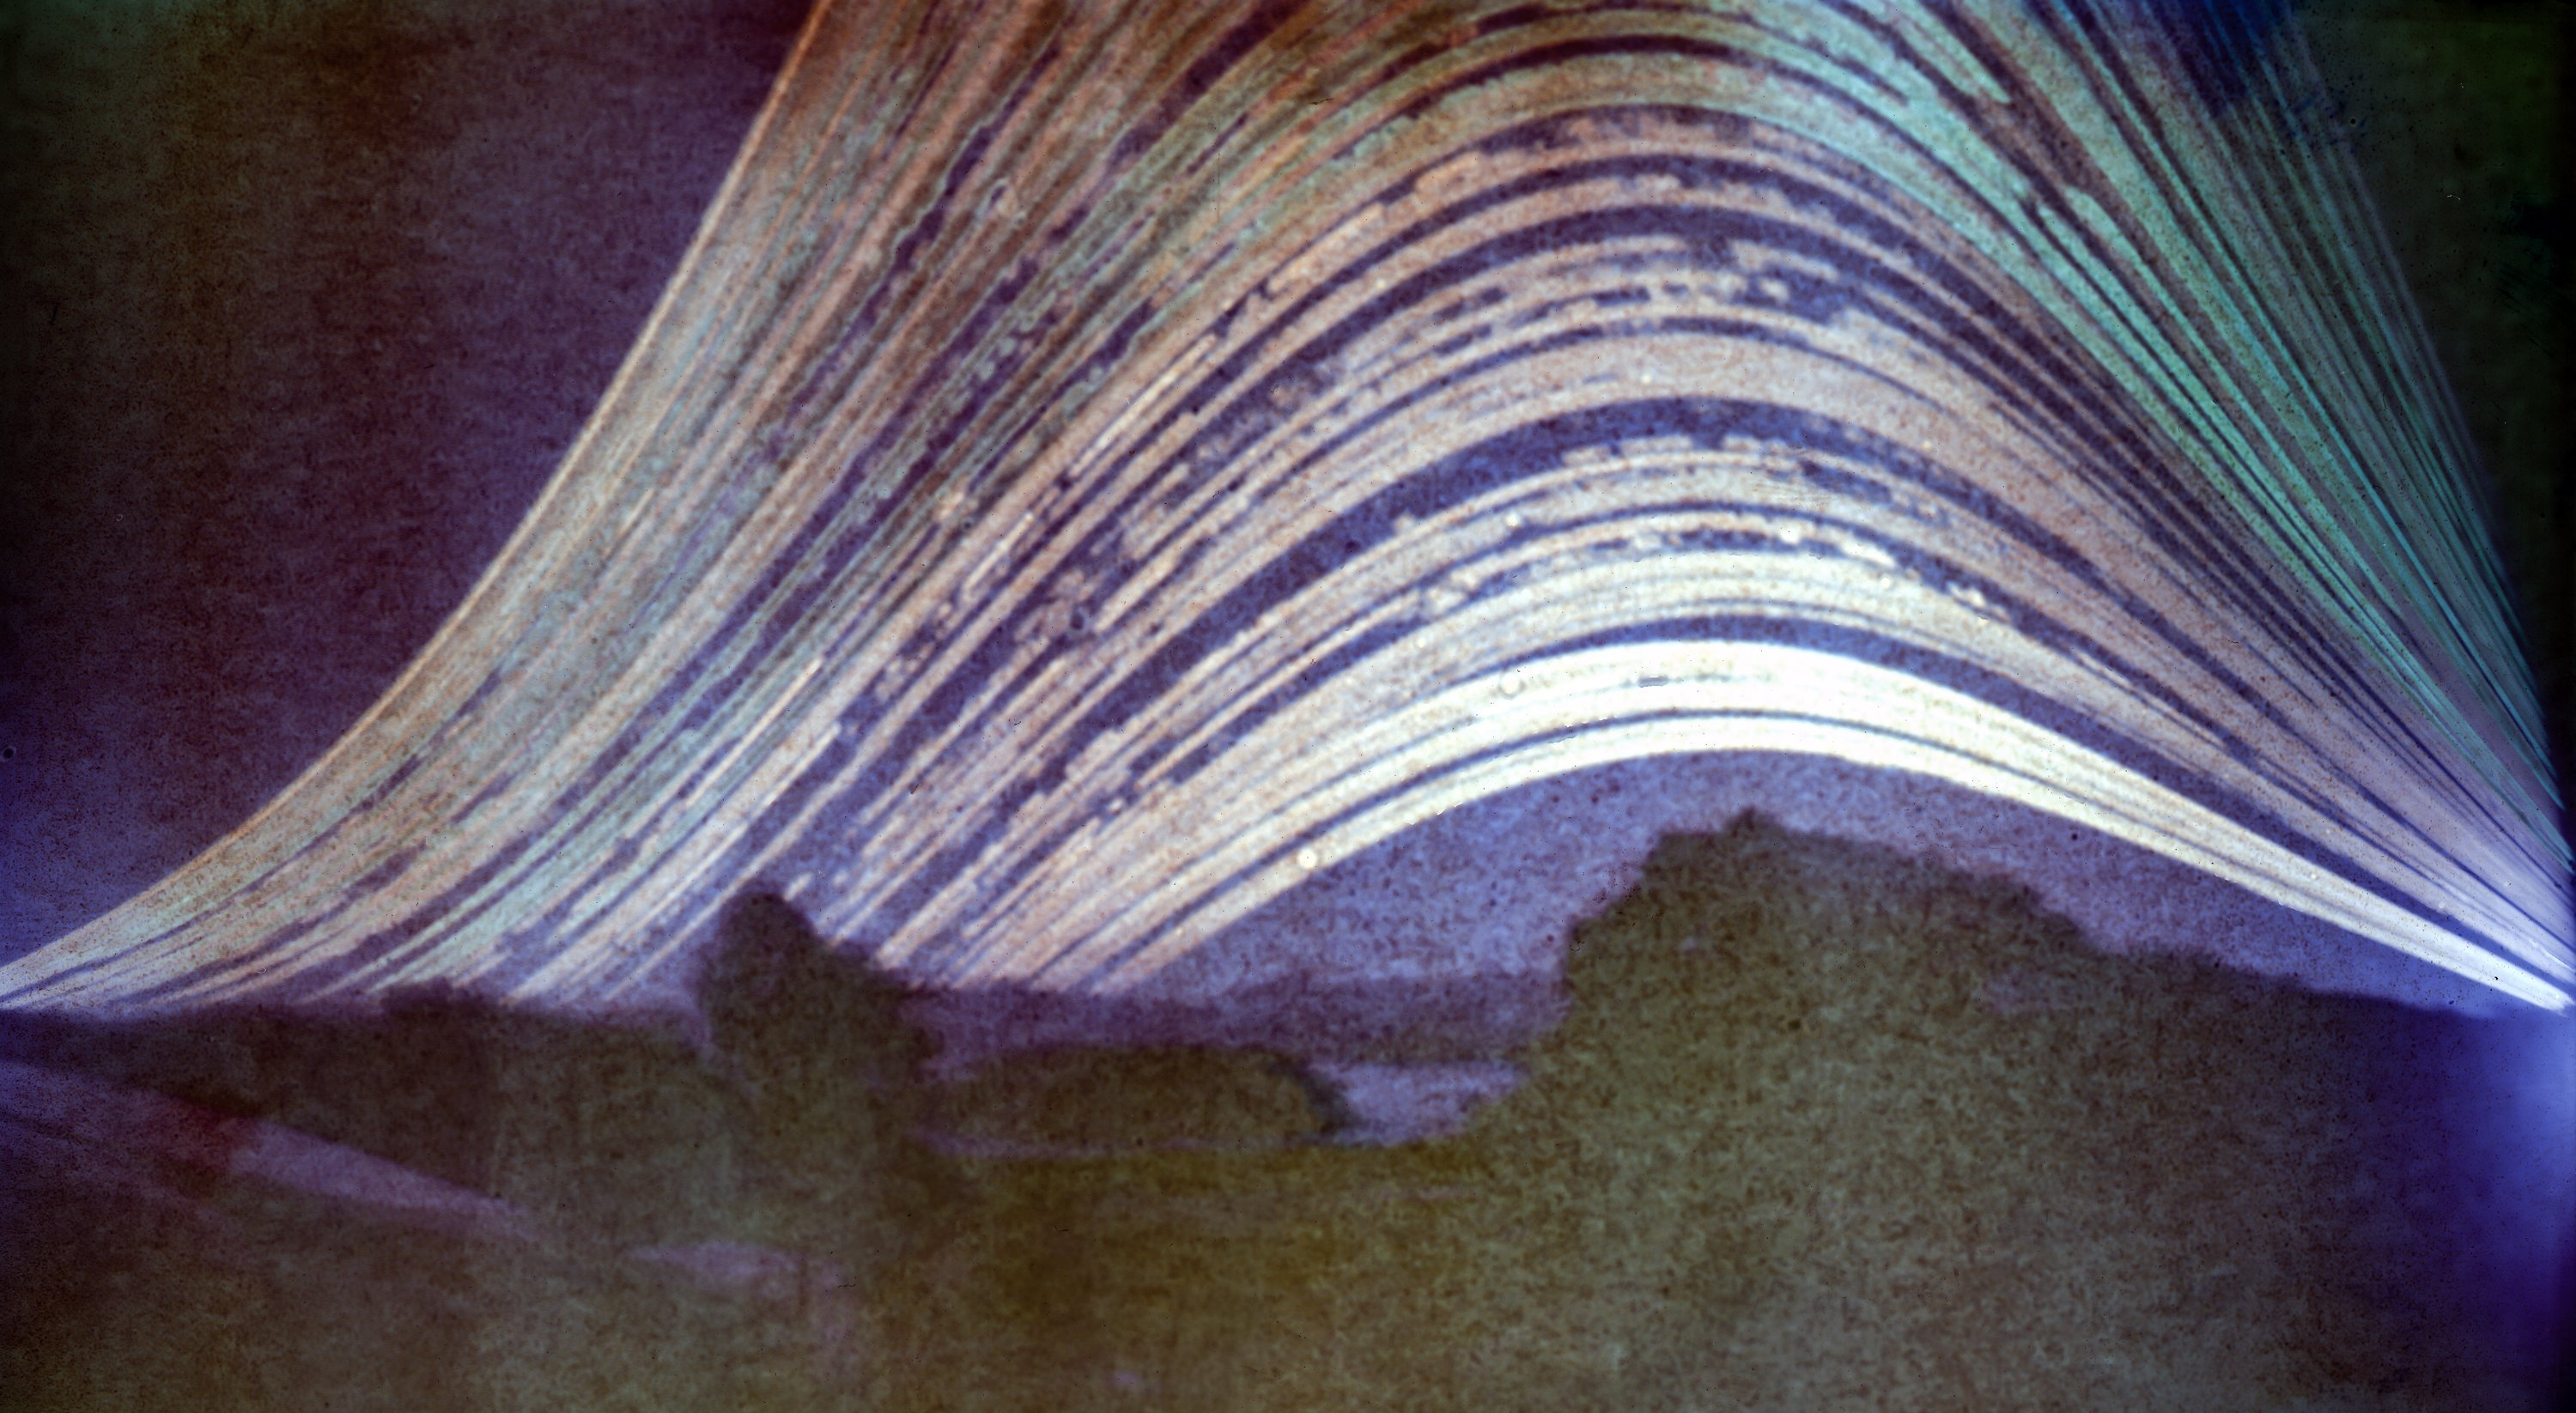 The path of the sun through to sunset, captured by a pinhole camera over 262 days. PHOTO: IAN...